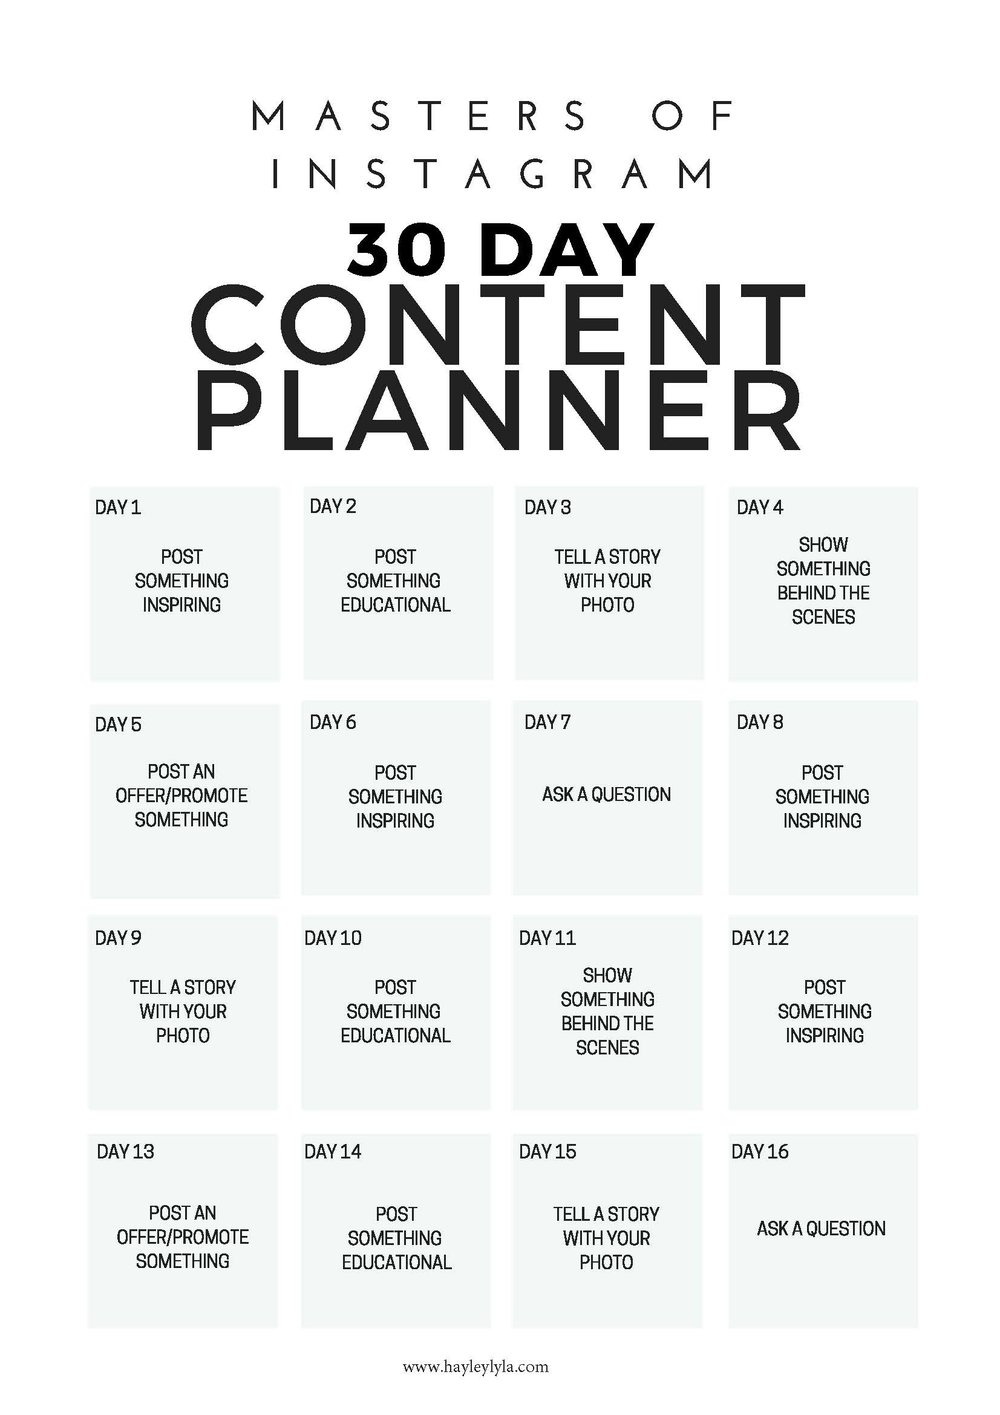 30 Day Content Planner embedded_Page_1.jpg